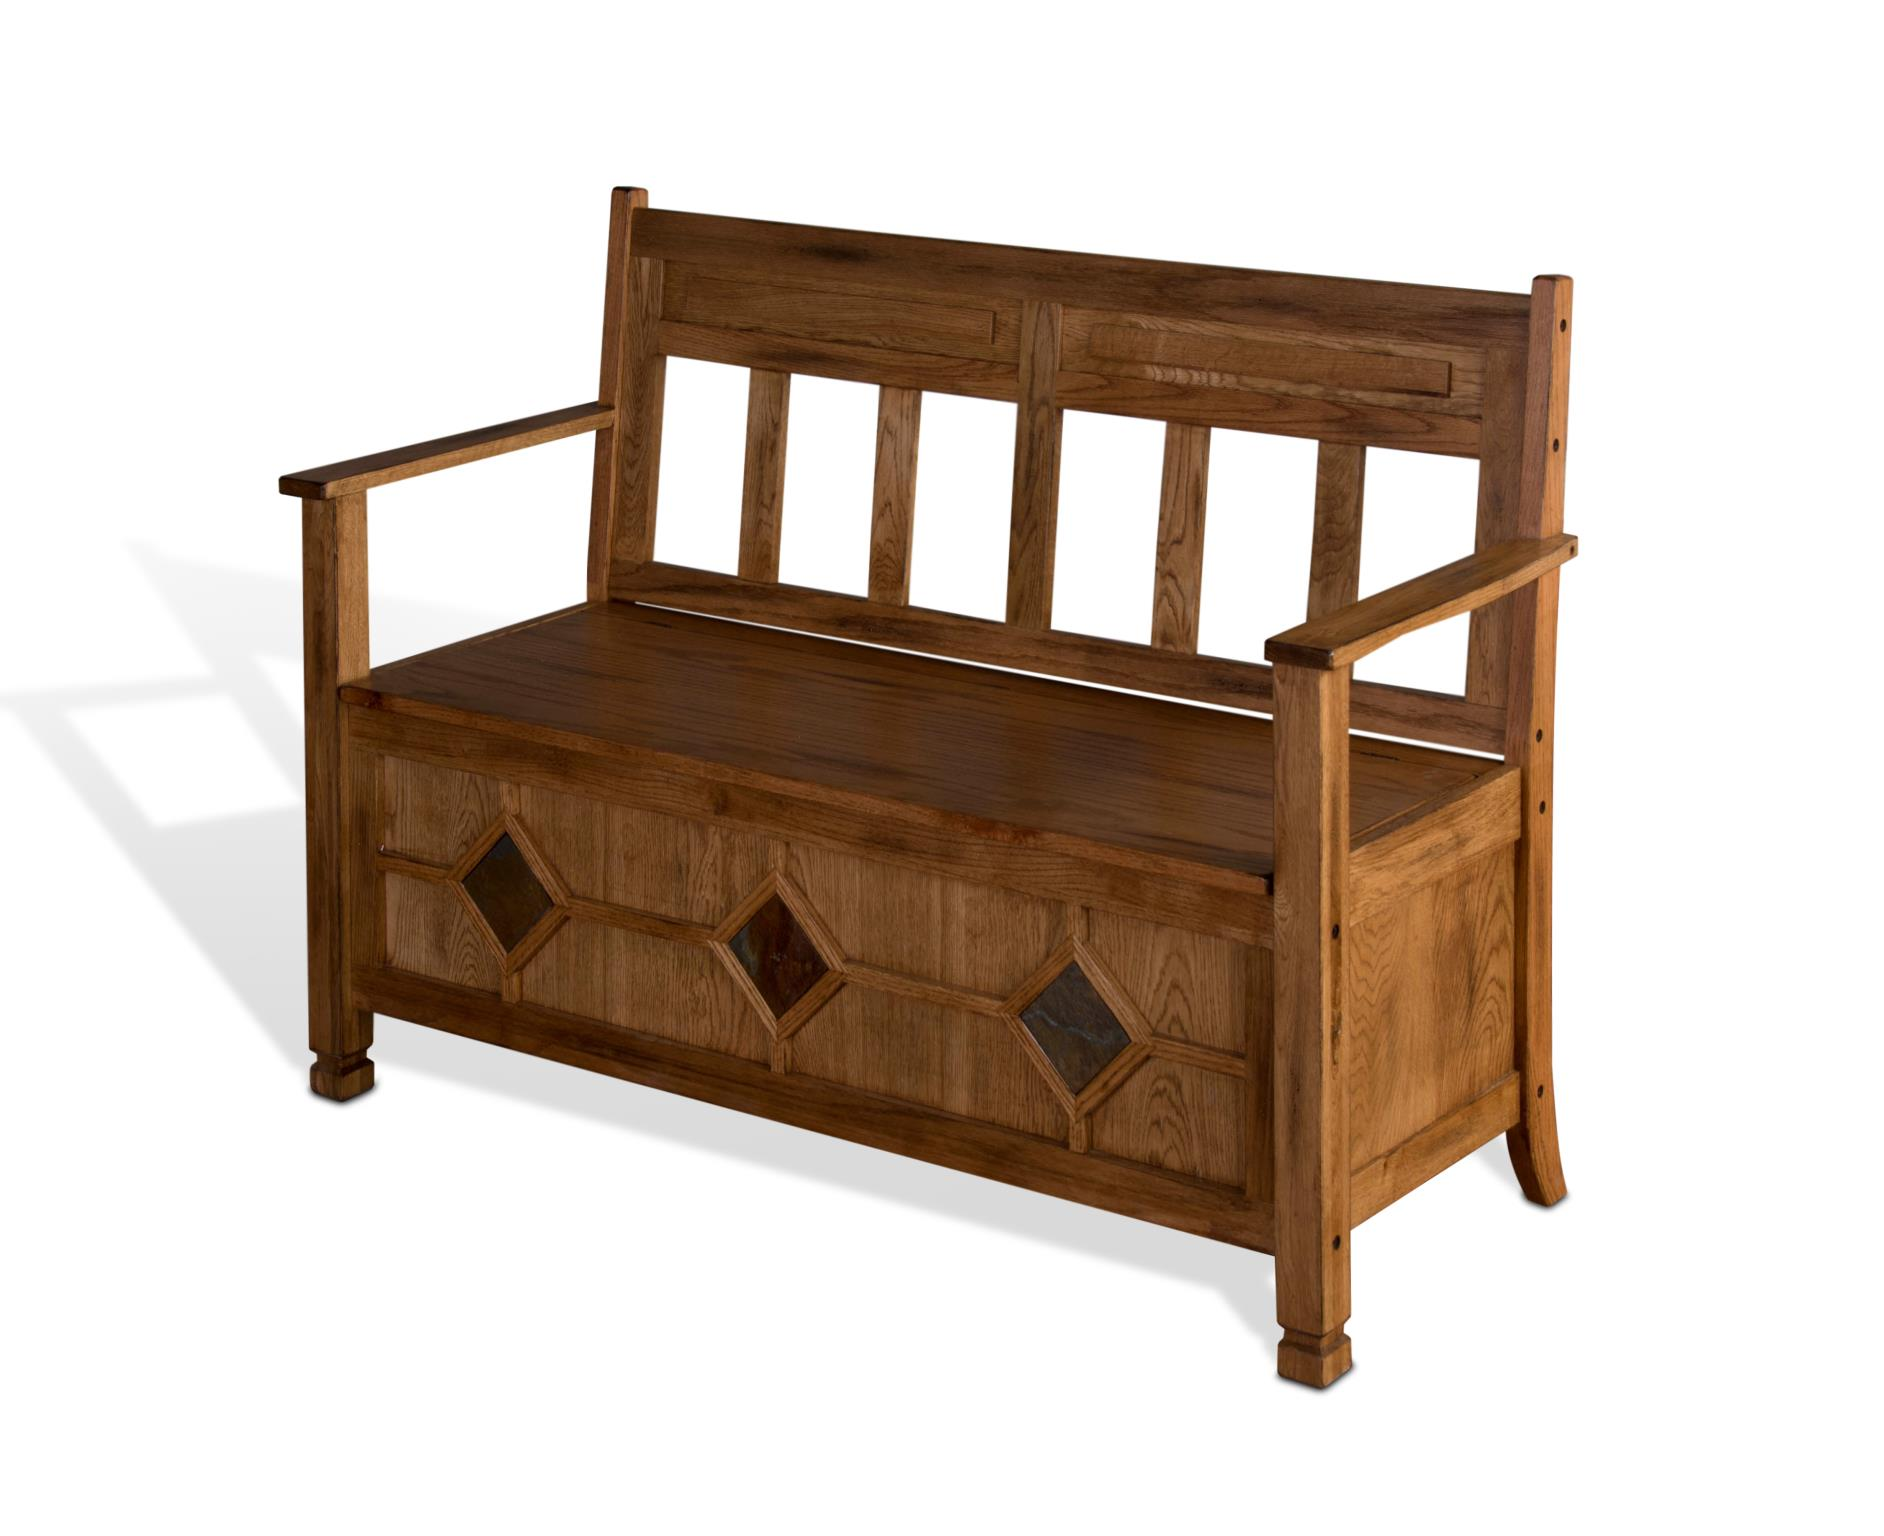 Sedona Bench with Storage Image